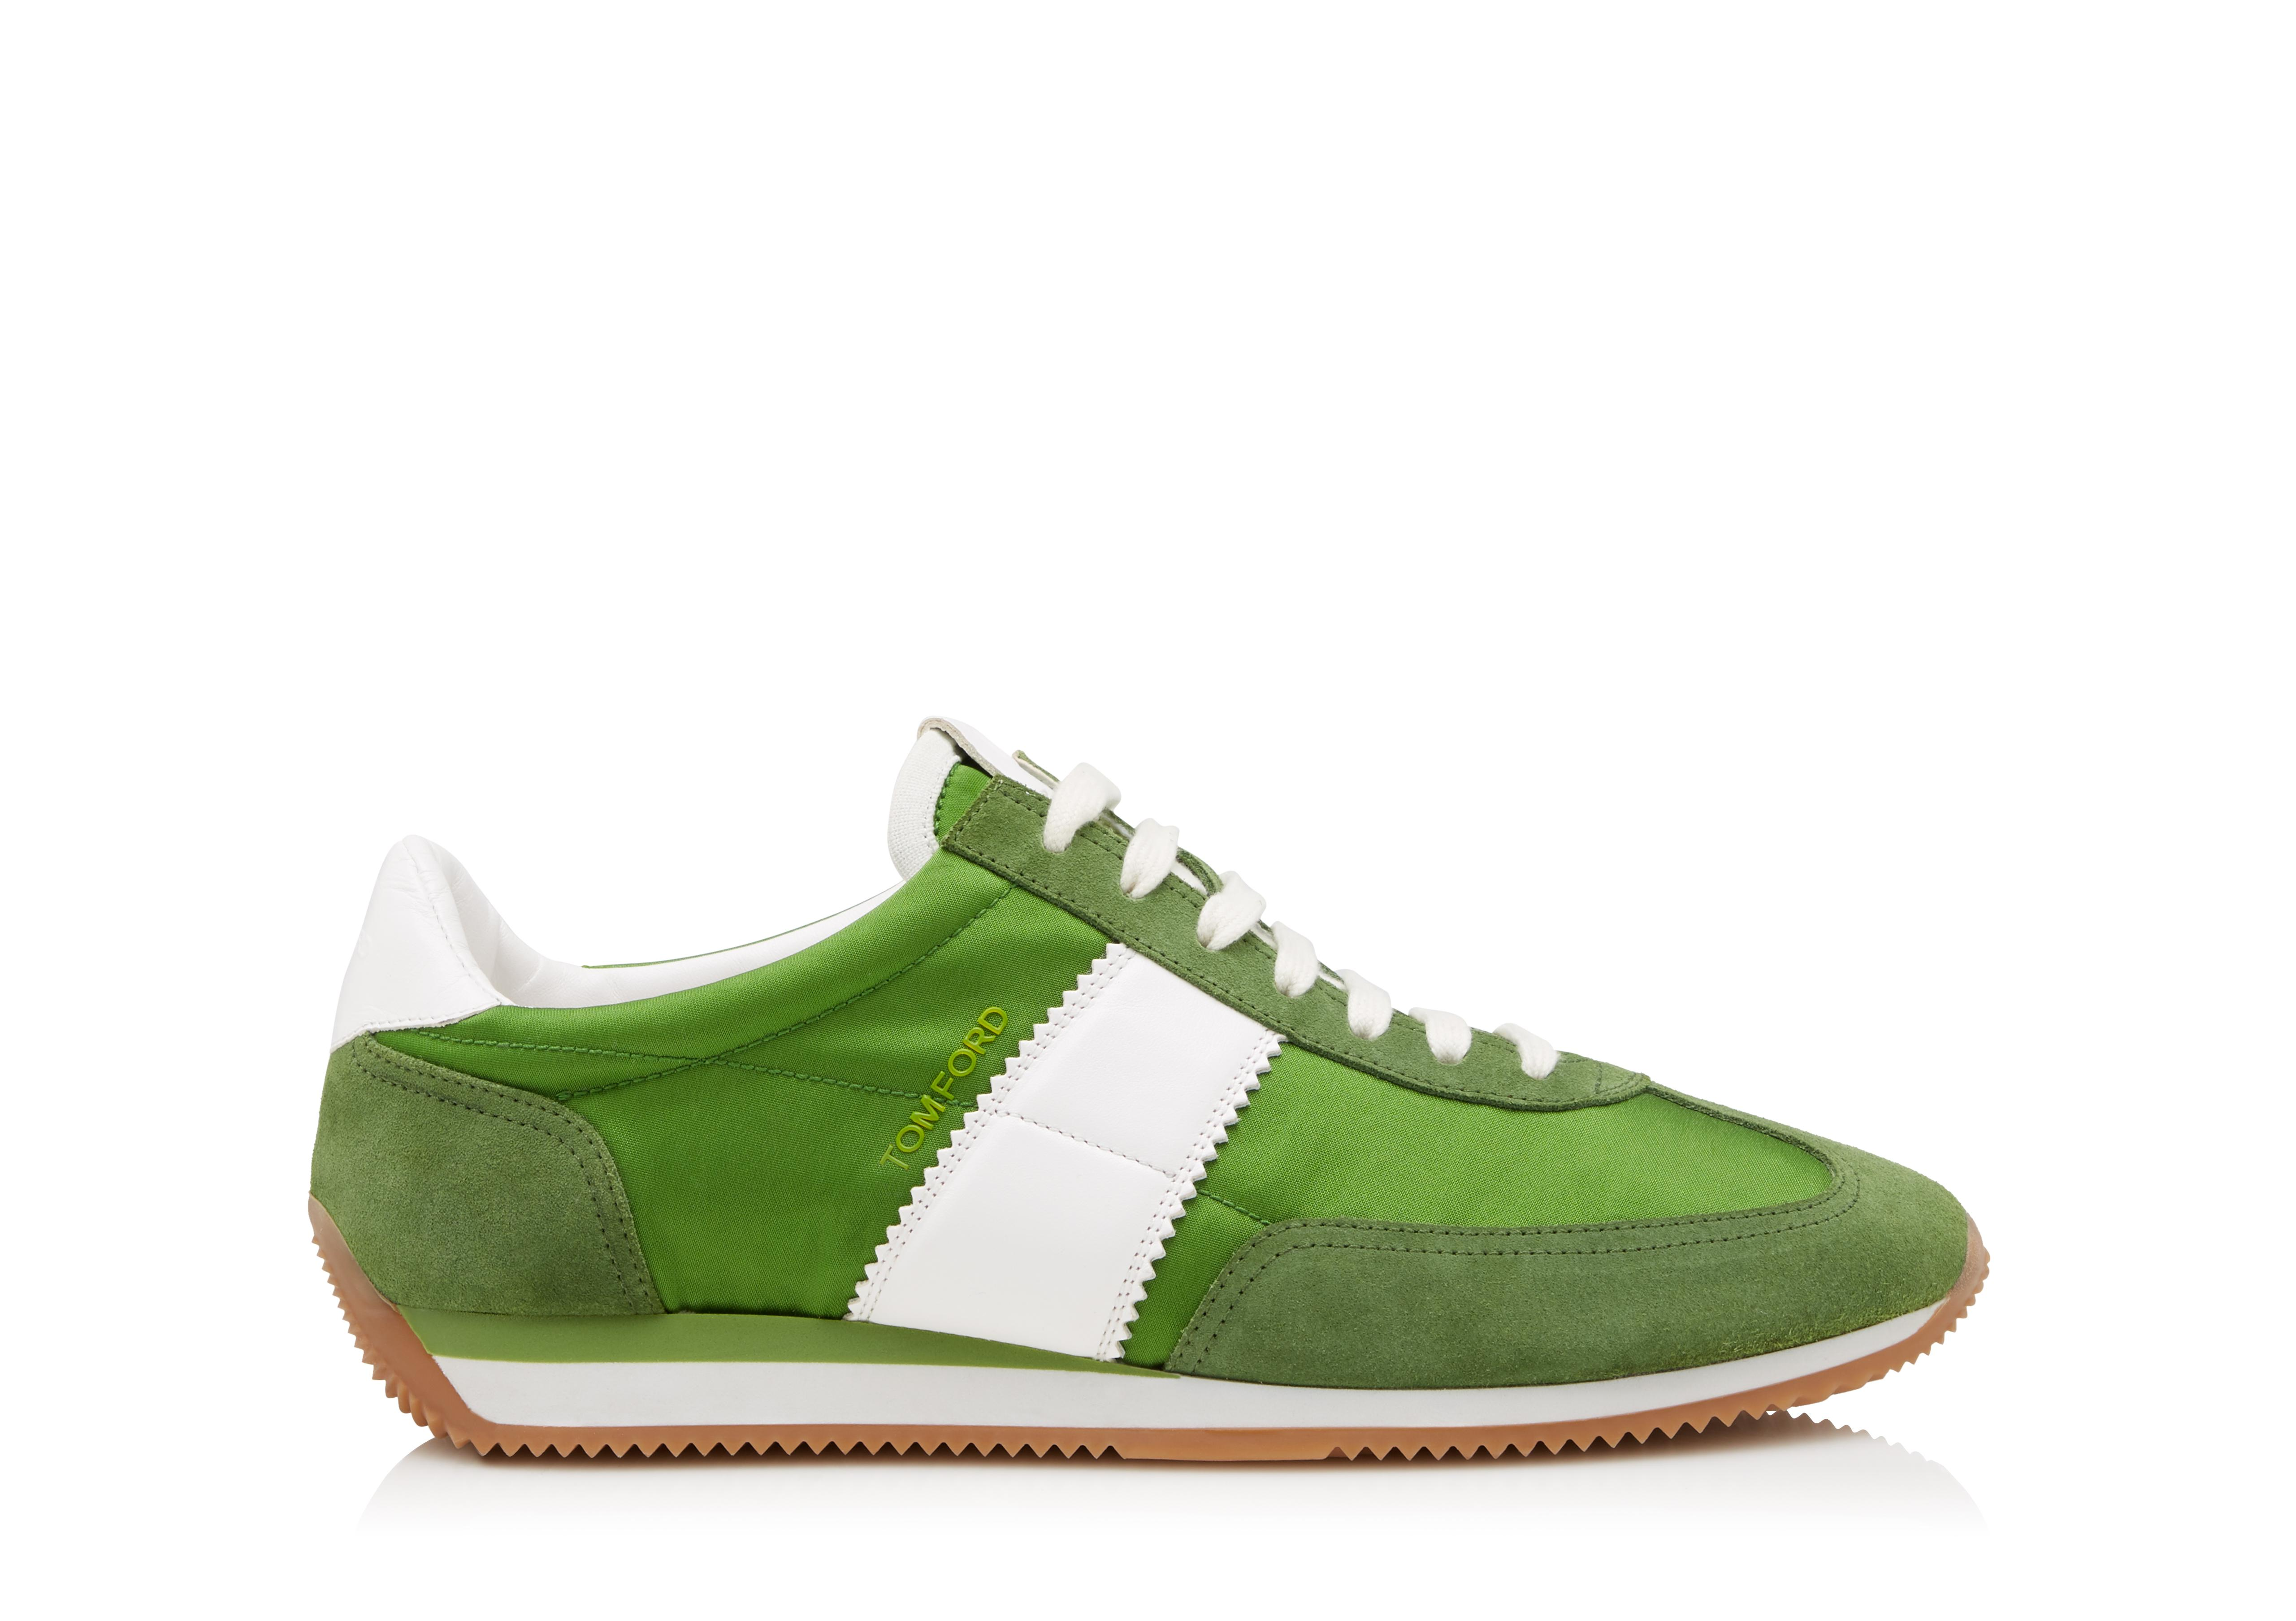 Orford Leather-trimmed Suede Sneakers - BeigeTom Ford N5whiYSJvT